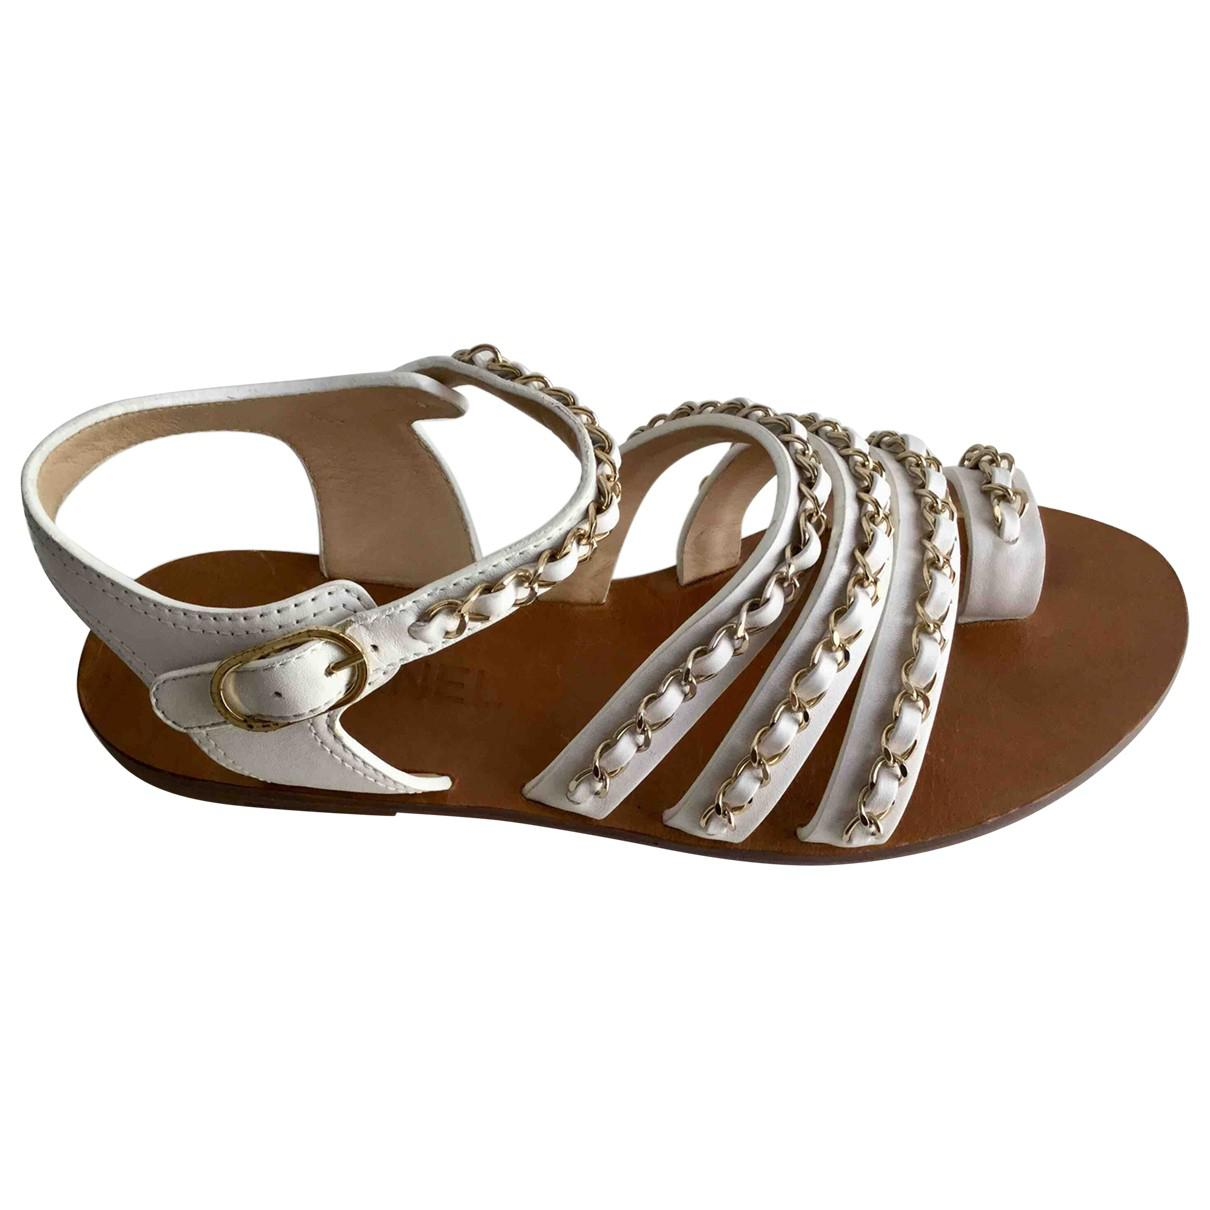 Pre-owned - Leather sandals Chanel b5l2wU8